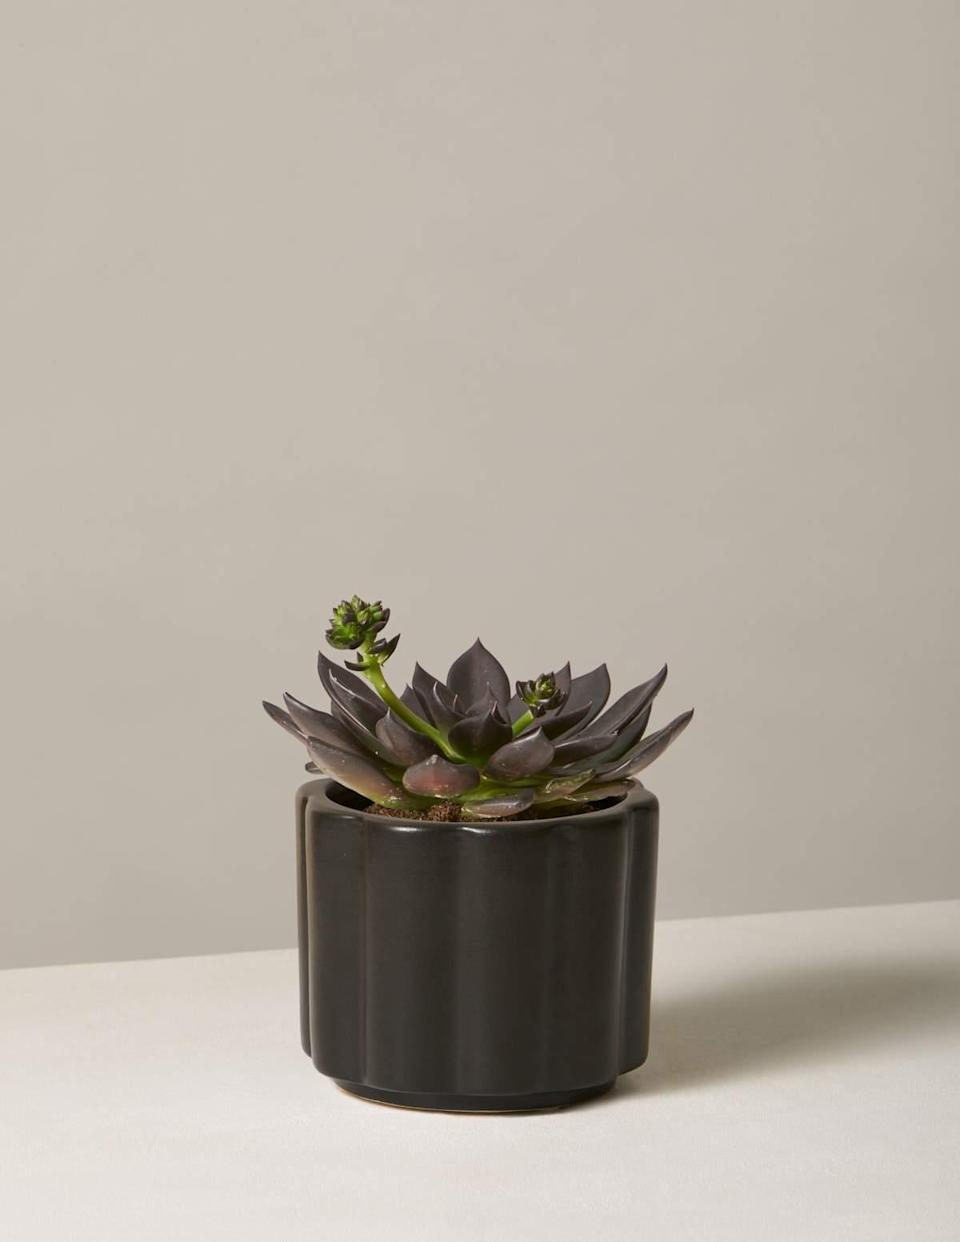 """<br><br><strong>The Sill</strong> Echeveria Preta, $, available at <a href=""""https://go.skimresources.com/?id=30283X879131&url=https%3A%2F%2Fwww.thesill.com%2Fproducts%2Fecheveria-preta"""" rel=""""nofollow noopener"""" target=""""_blank"""" data-ylk=""""slk:The Sill"""" class=""""link rapid-noclick-resp"""">The Sill</a>"""